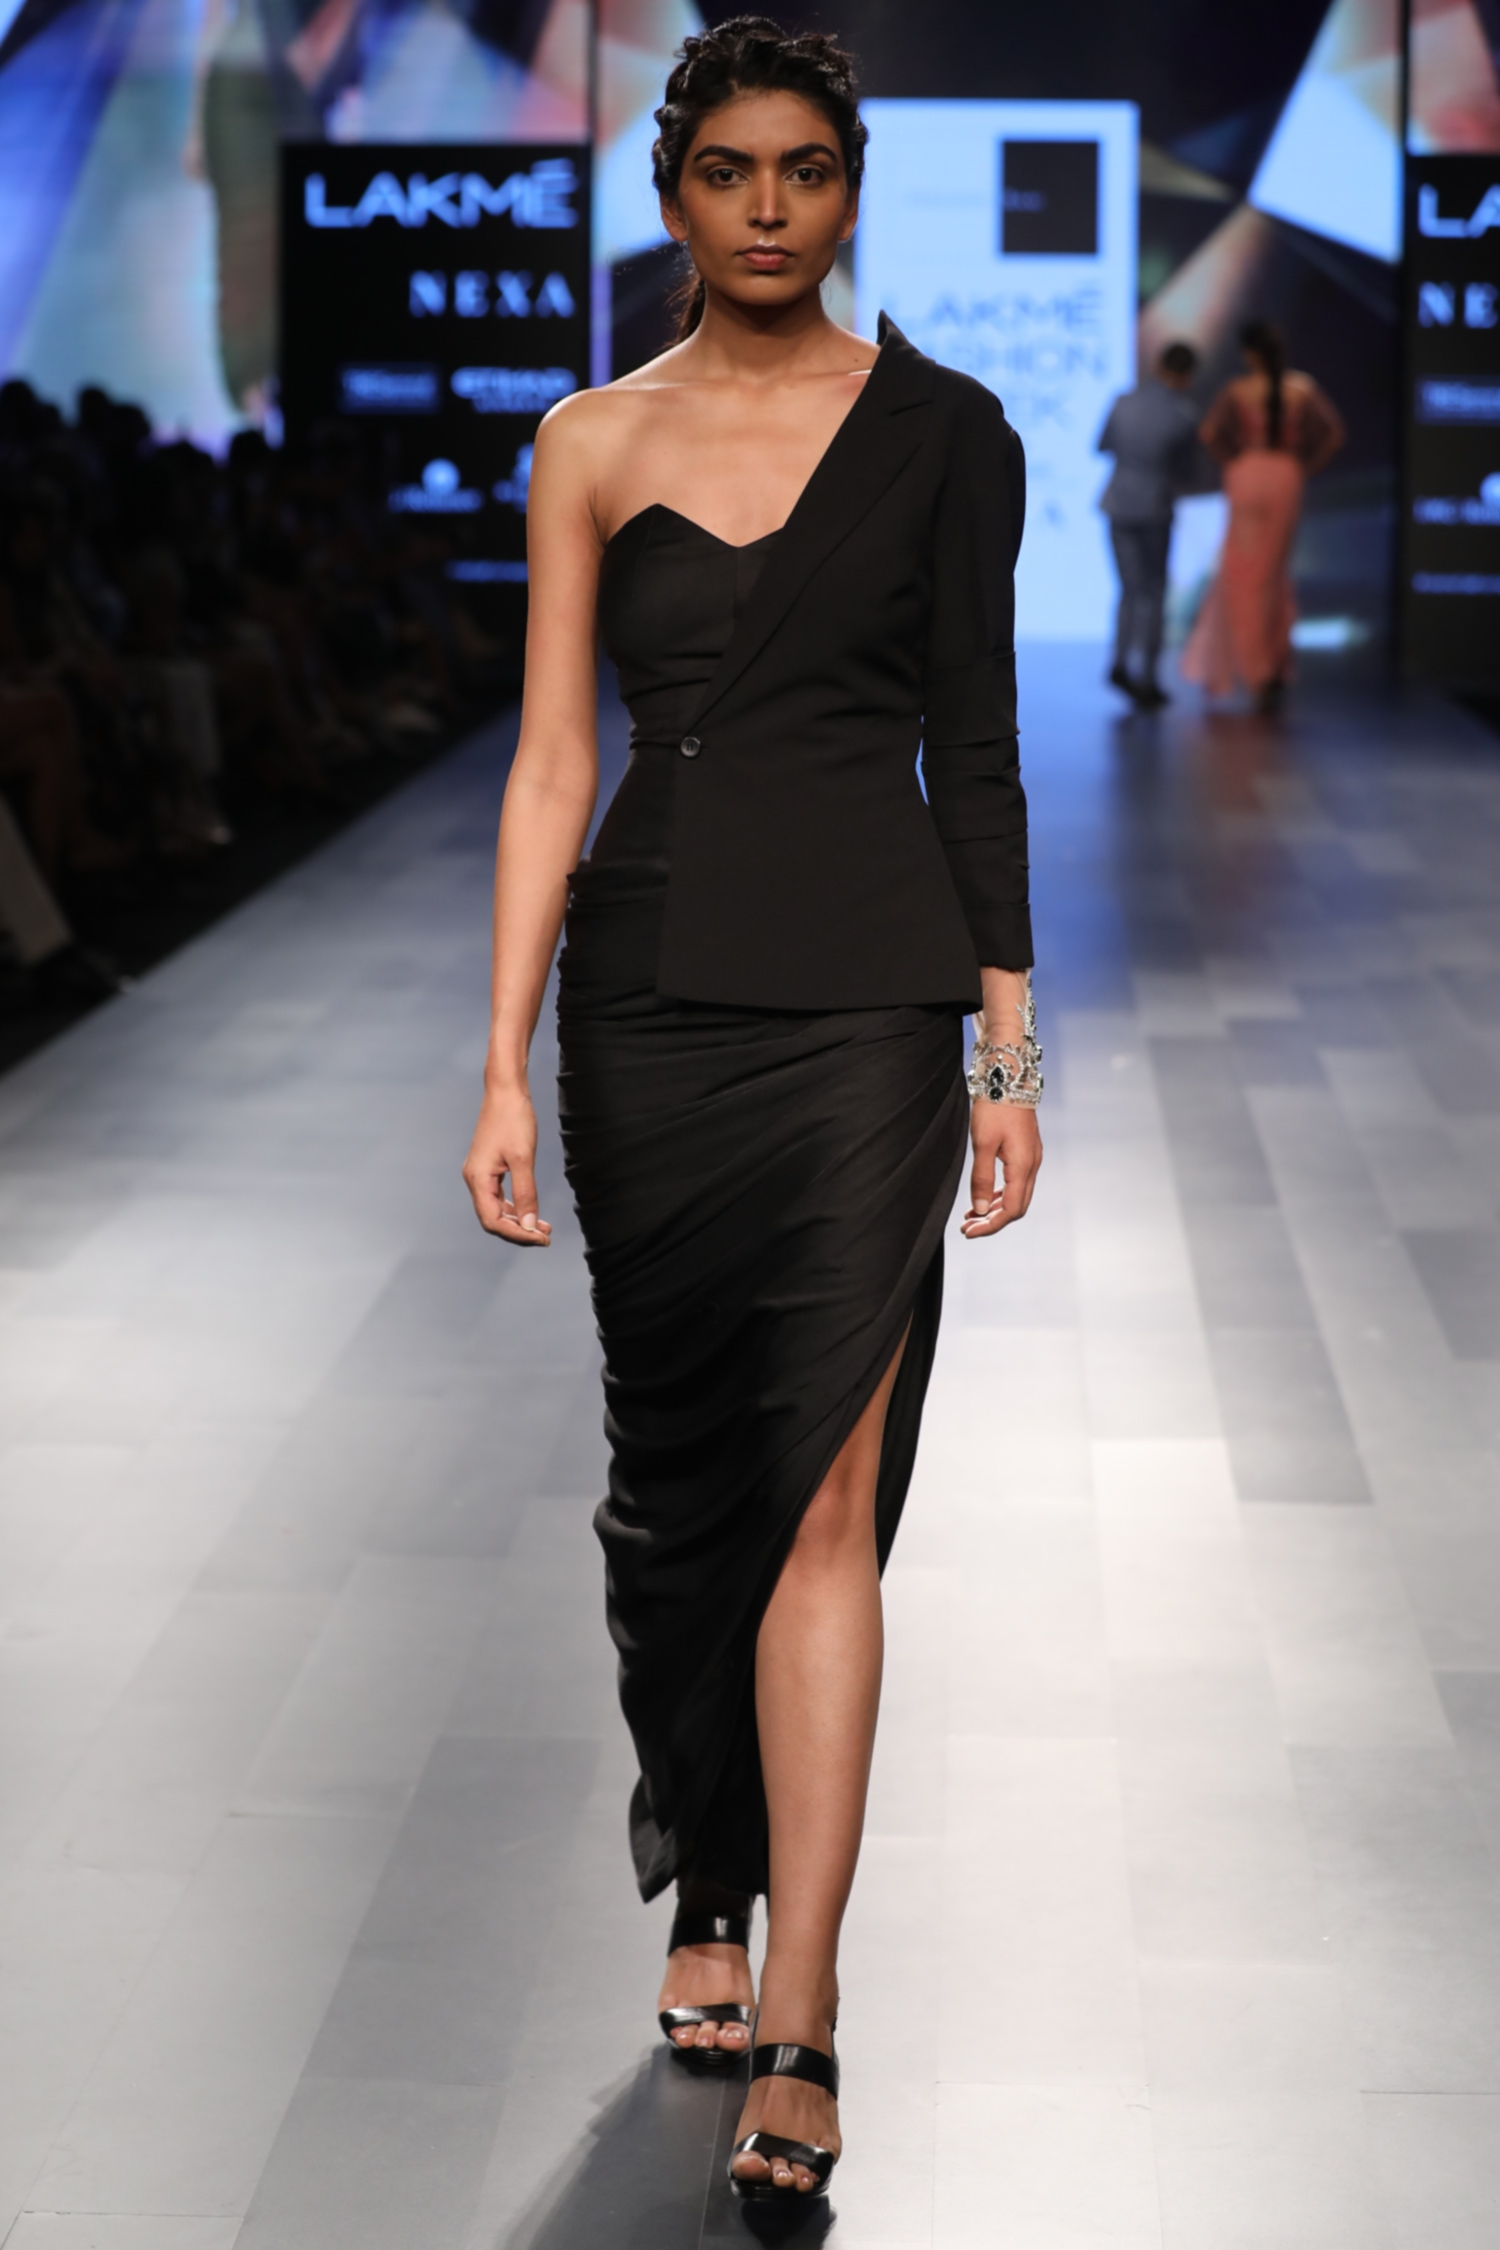 Ciceroni-fashion-party fashion – LBD – Jumpsuit – New Year's Eve – Party wear – Coco Chanel – party dressing – Festive season – classic LBD – Lakme fashion week - dinner party fashion – glamourous dress – glitter dress – printed jumpsuit – Heena Somani – Sameer Madan- asymmetrical dress – Versace – Ahmedabad - new year's outfit- new year's eve outfits 2019- new year's eve dress- new year's dress- new year party dress- sexy new year's eve dresses